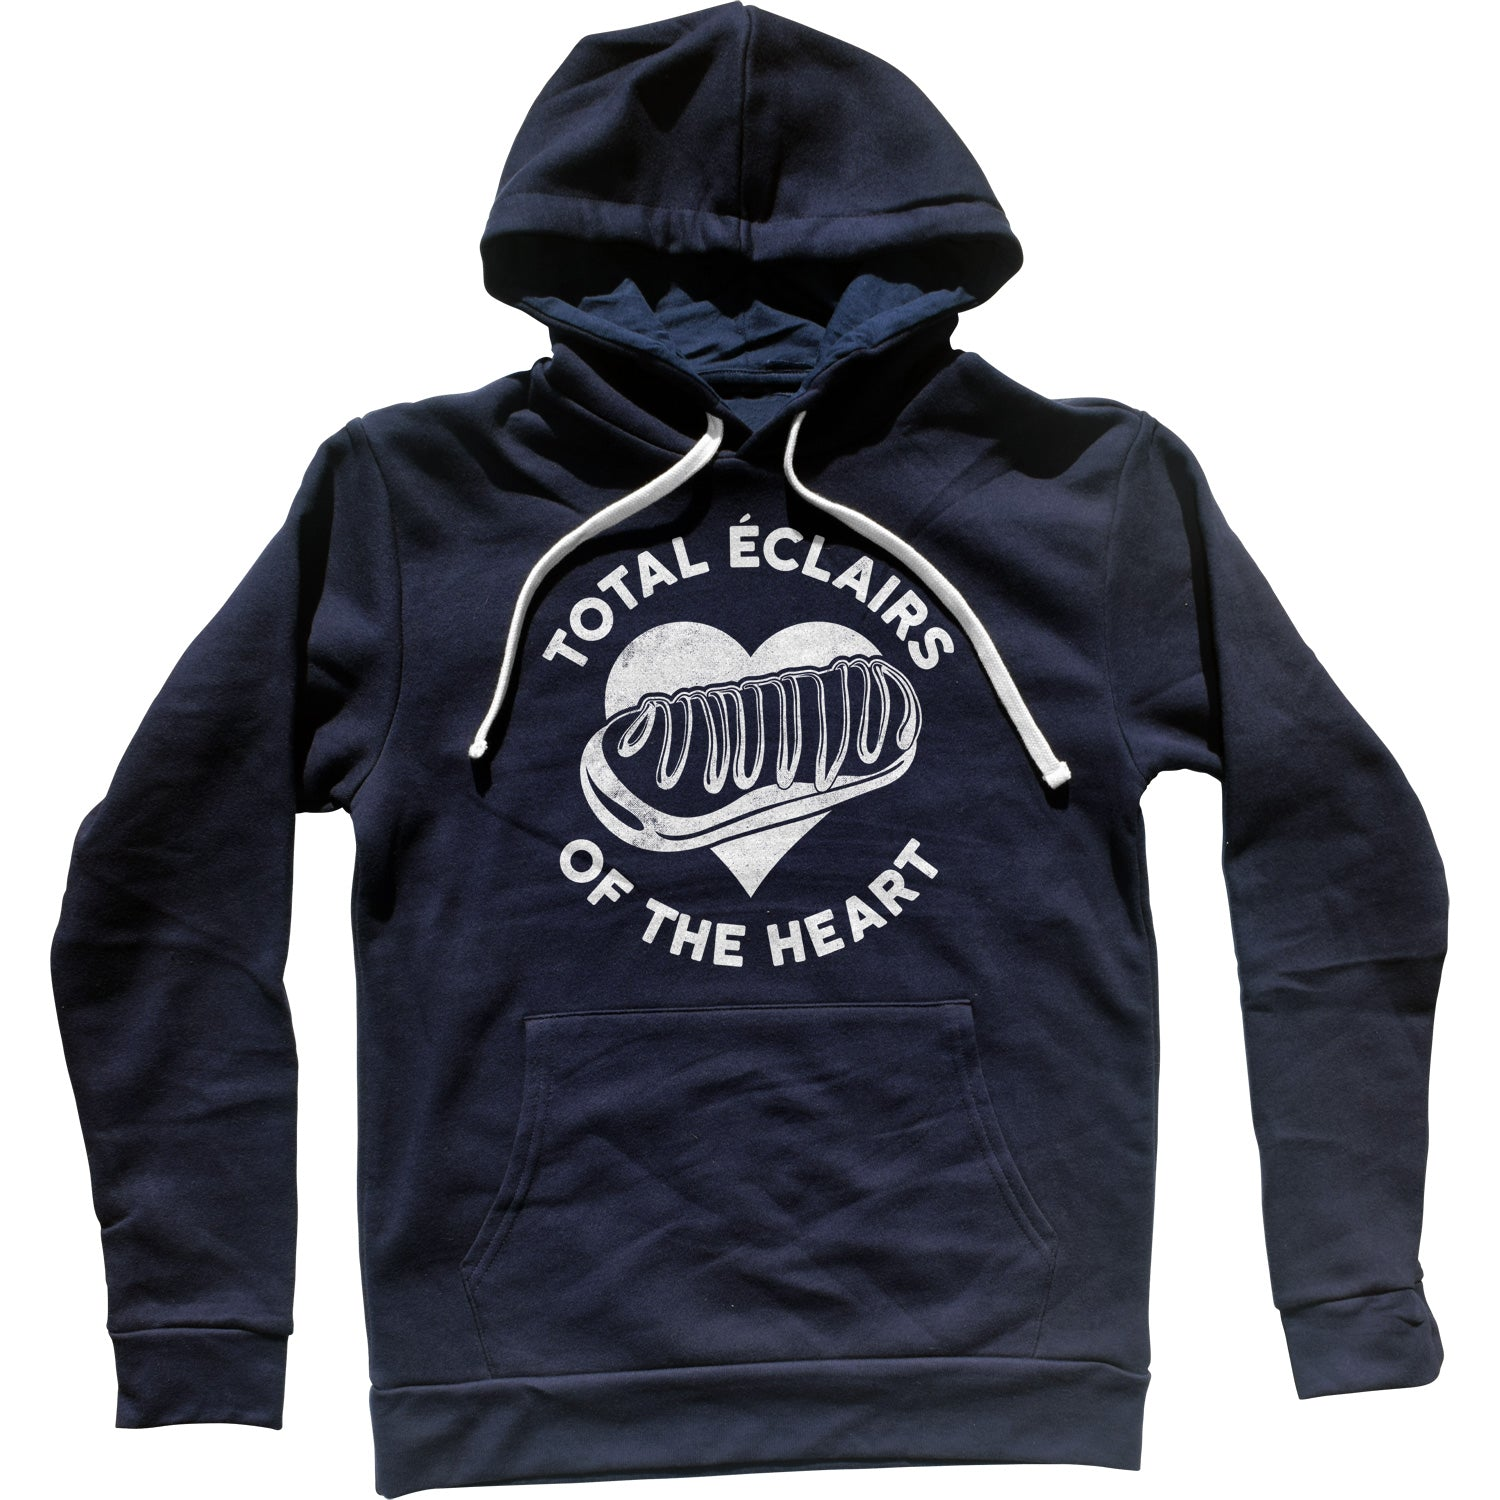 Total Eclairs of the Heart Donut Shirt Unisex Hoodie